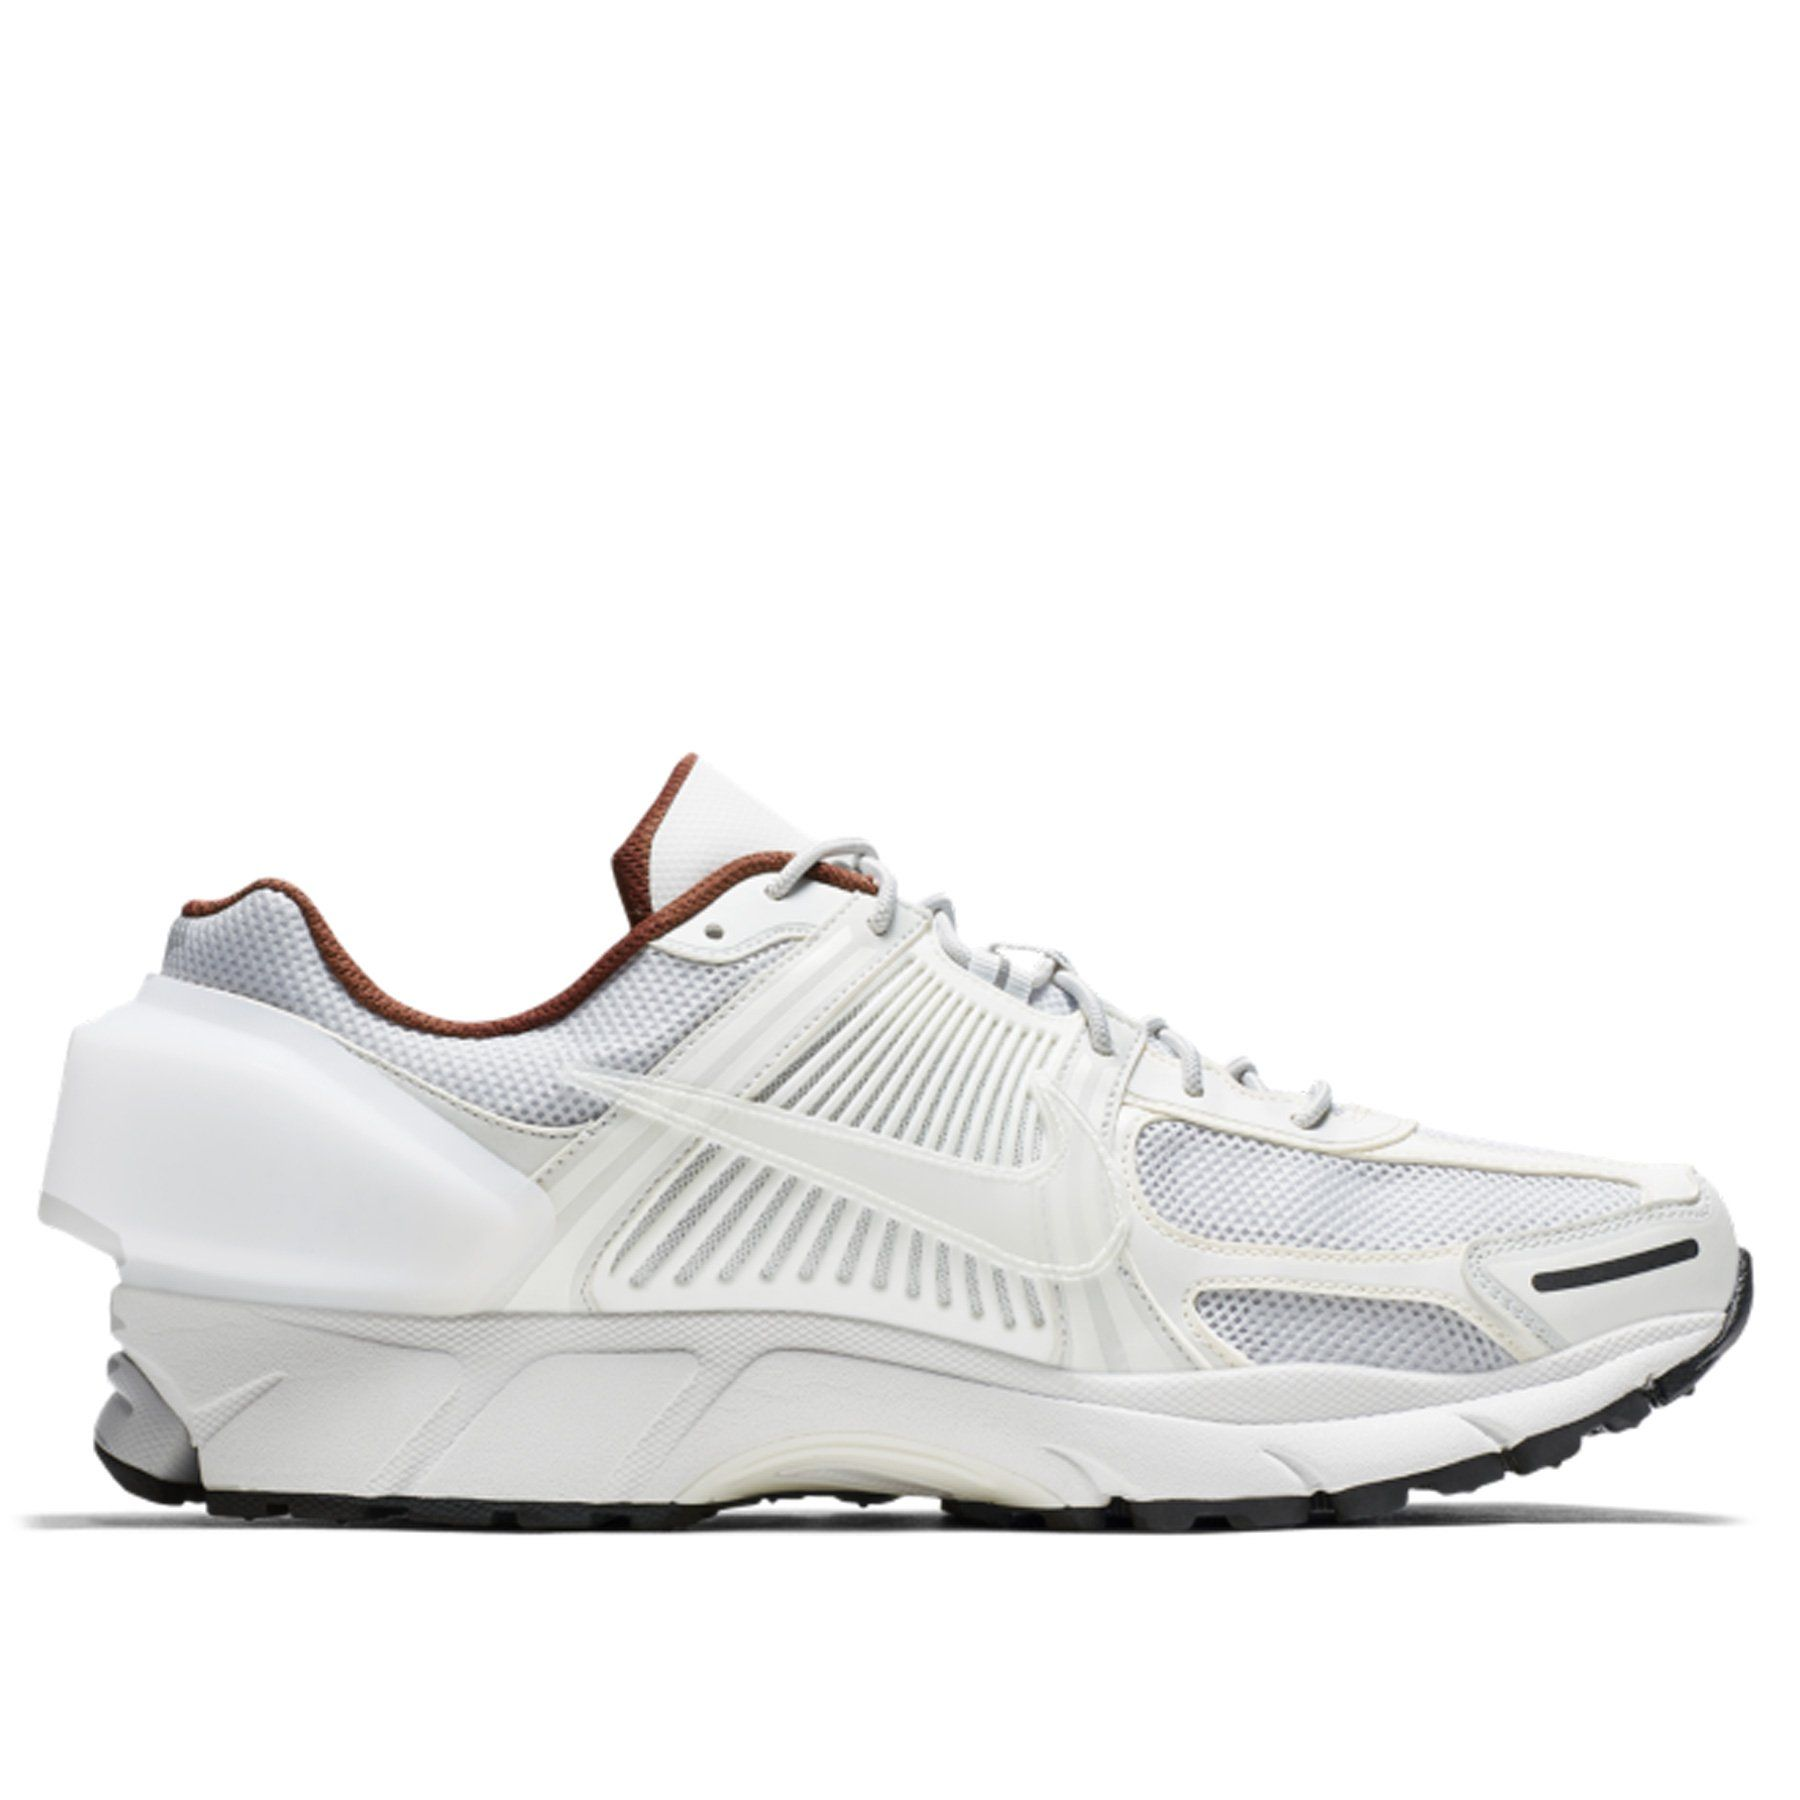 3537006b110f5 Nike x A-COLD-WALL  Zoom Vomero +5 (Sail) – Dover Street Market